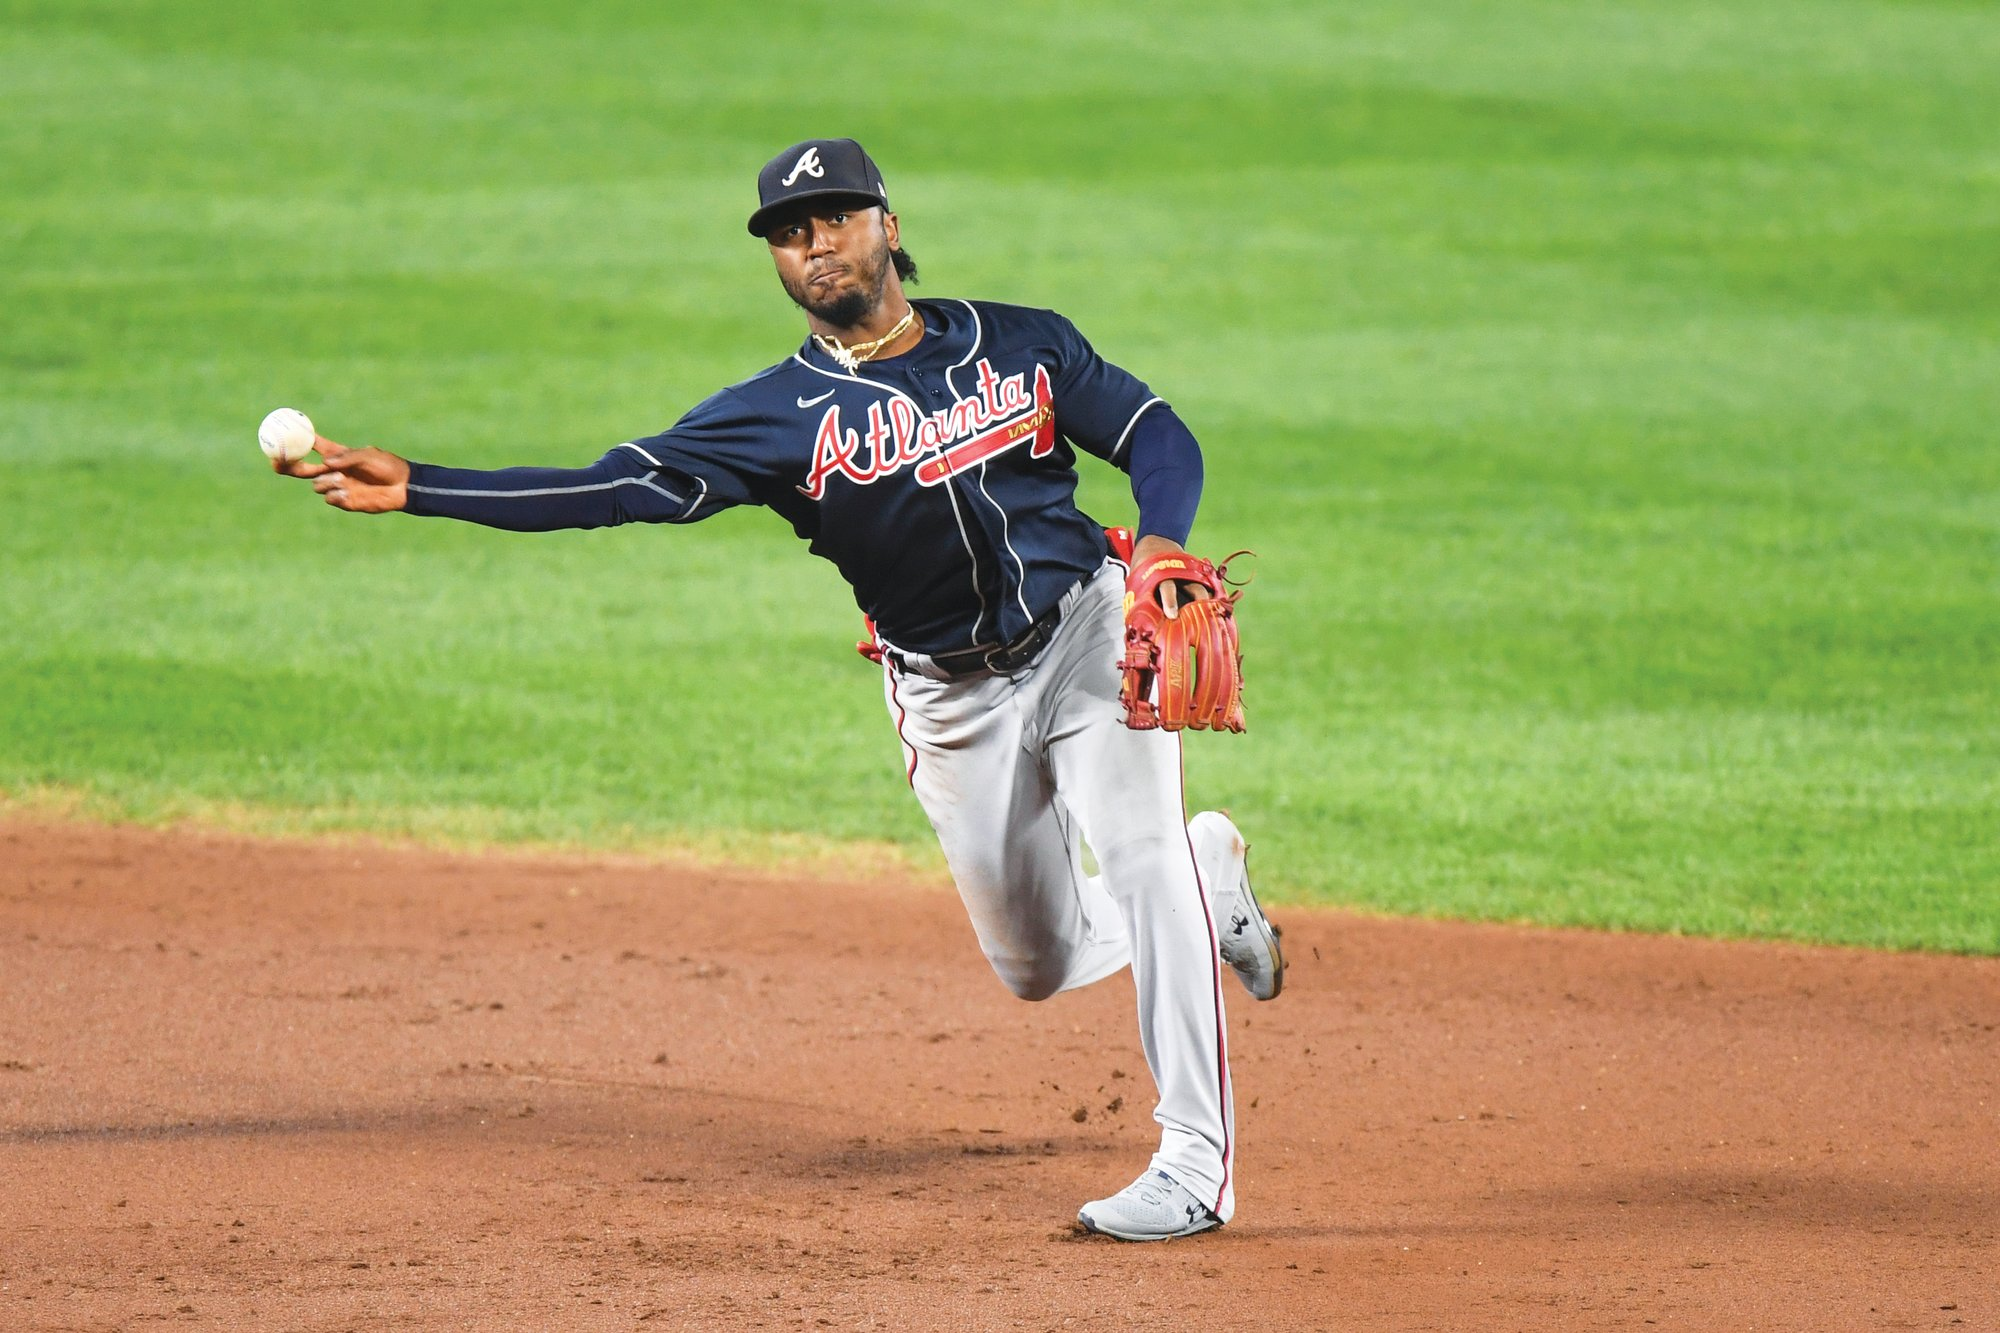 If Atlanta makes the National League playoffs and wins its first-round series, Ozzie Albies and his Braves teammates will have the opportunity to play in the bubble.